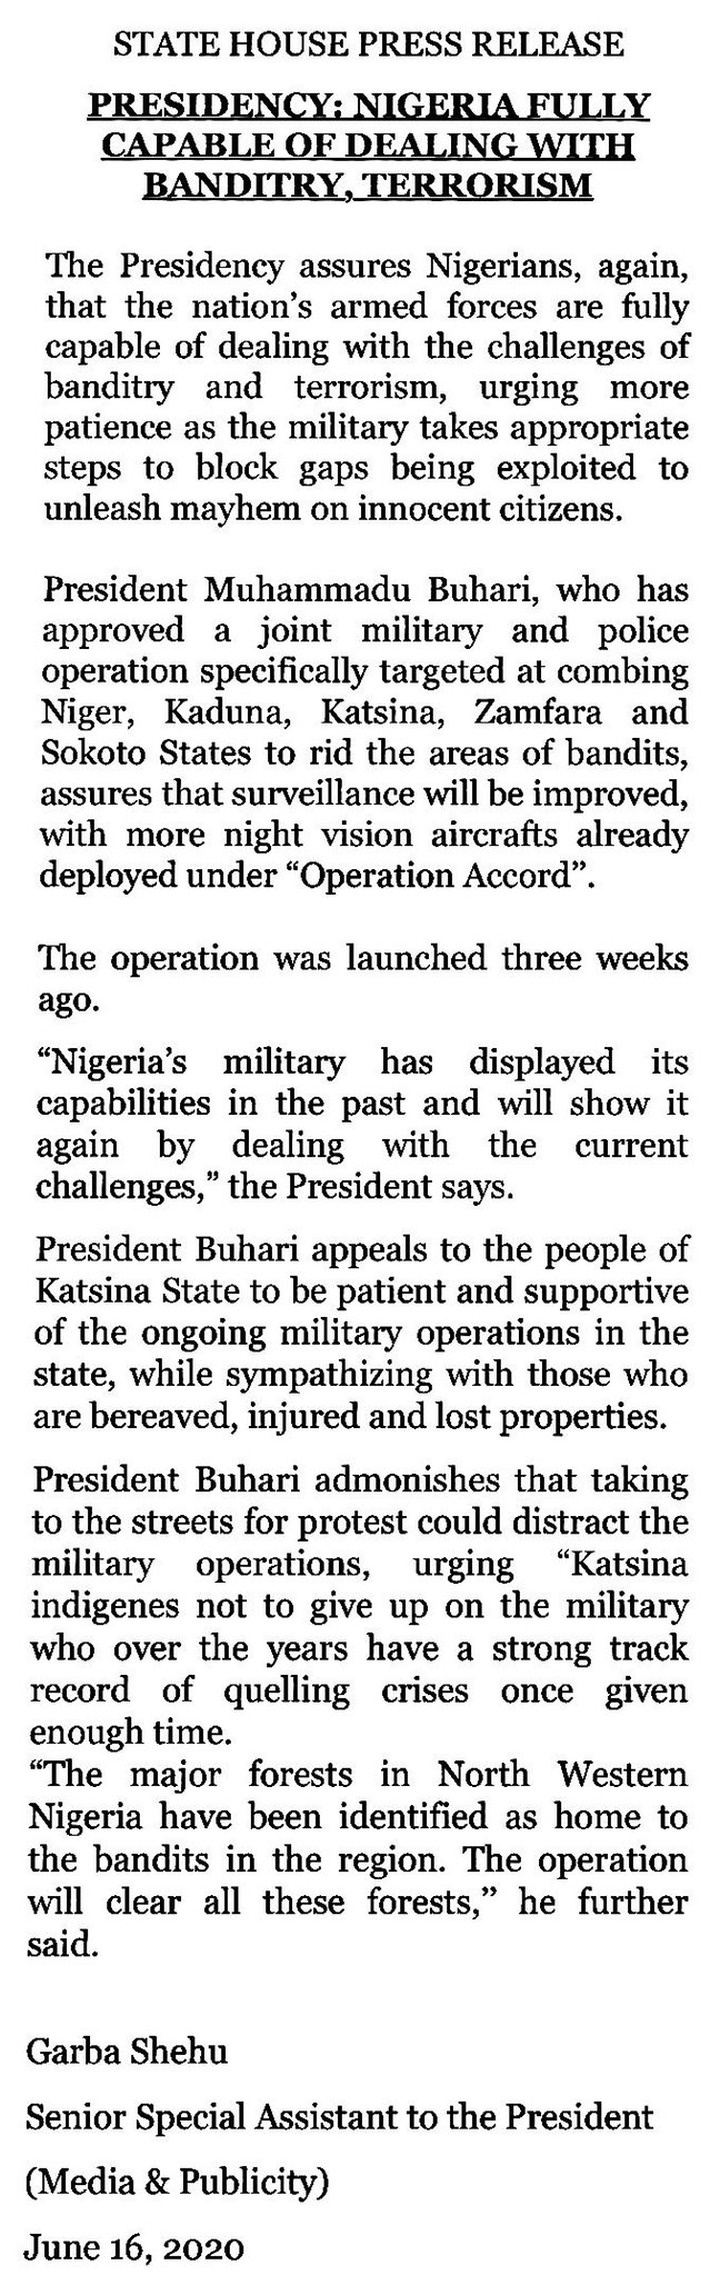 Buhari's statement on joint military and police operation